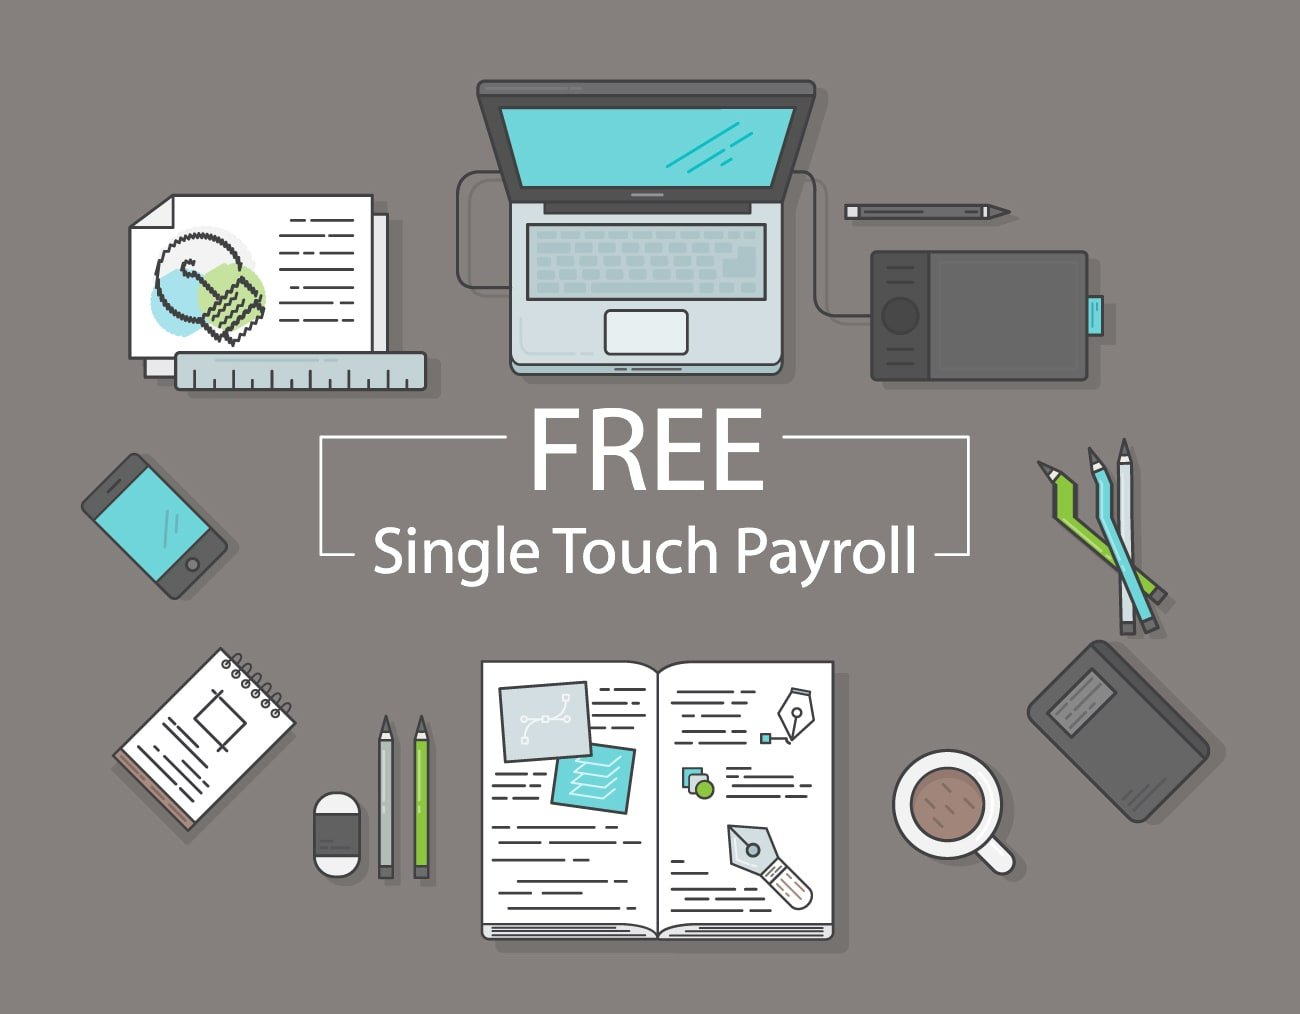 Free Single Touch Payroll with SapphireOne